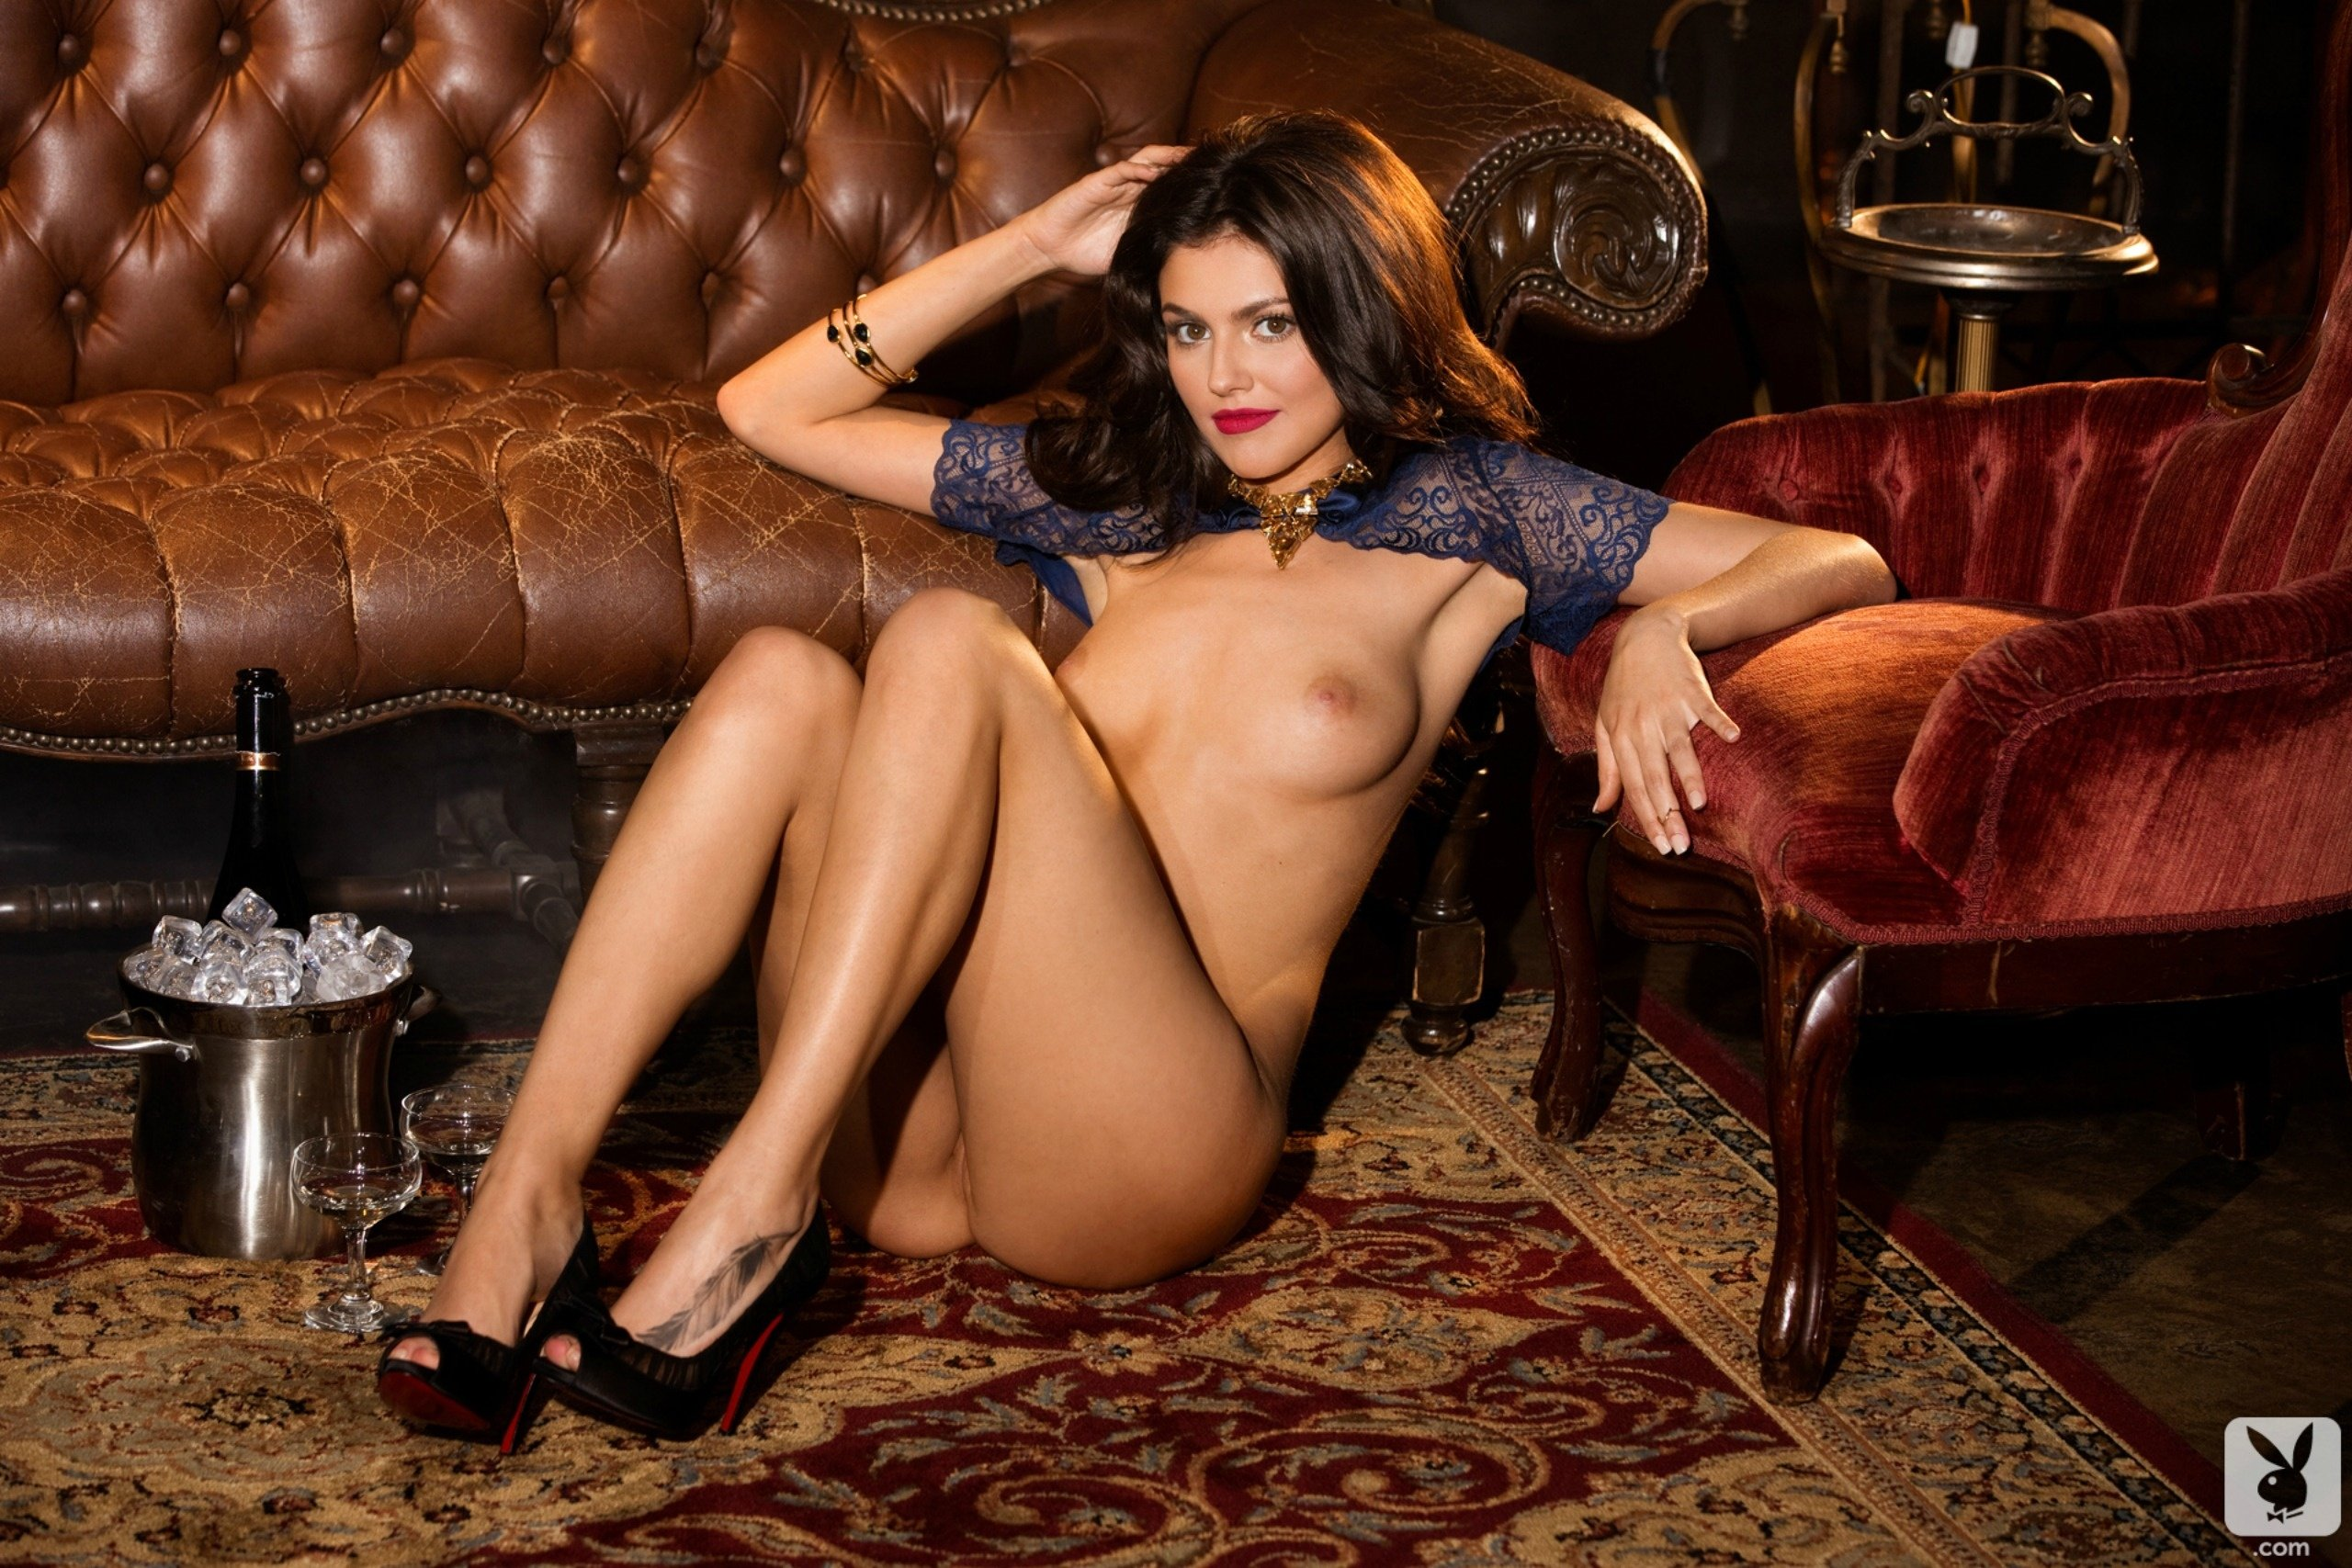 Glamour Model Pictures And Jokes